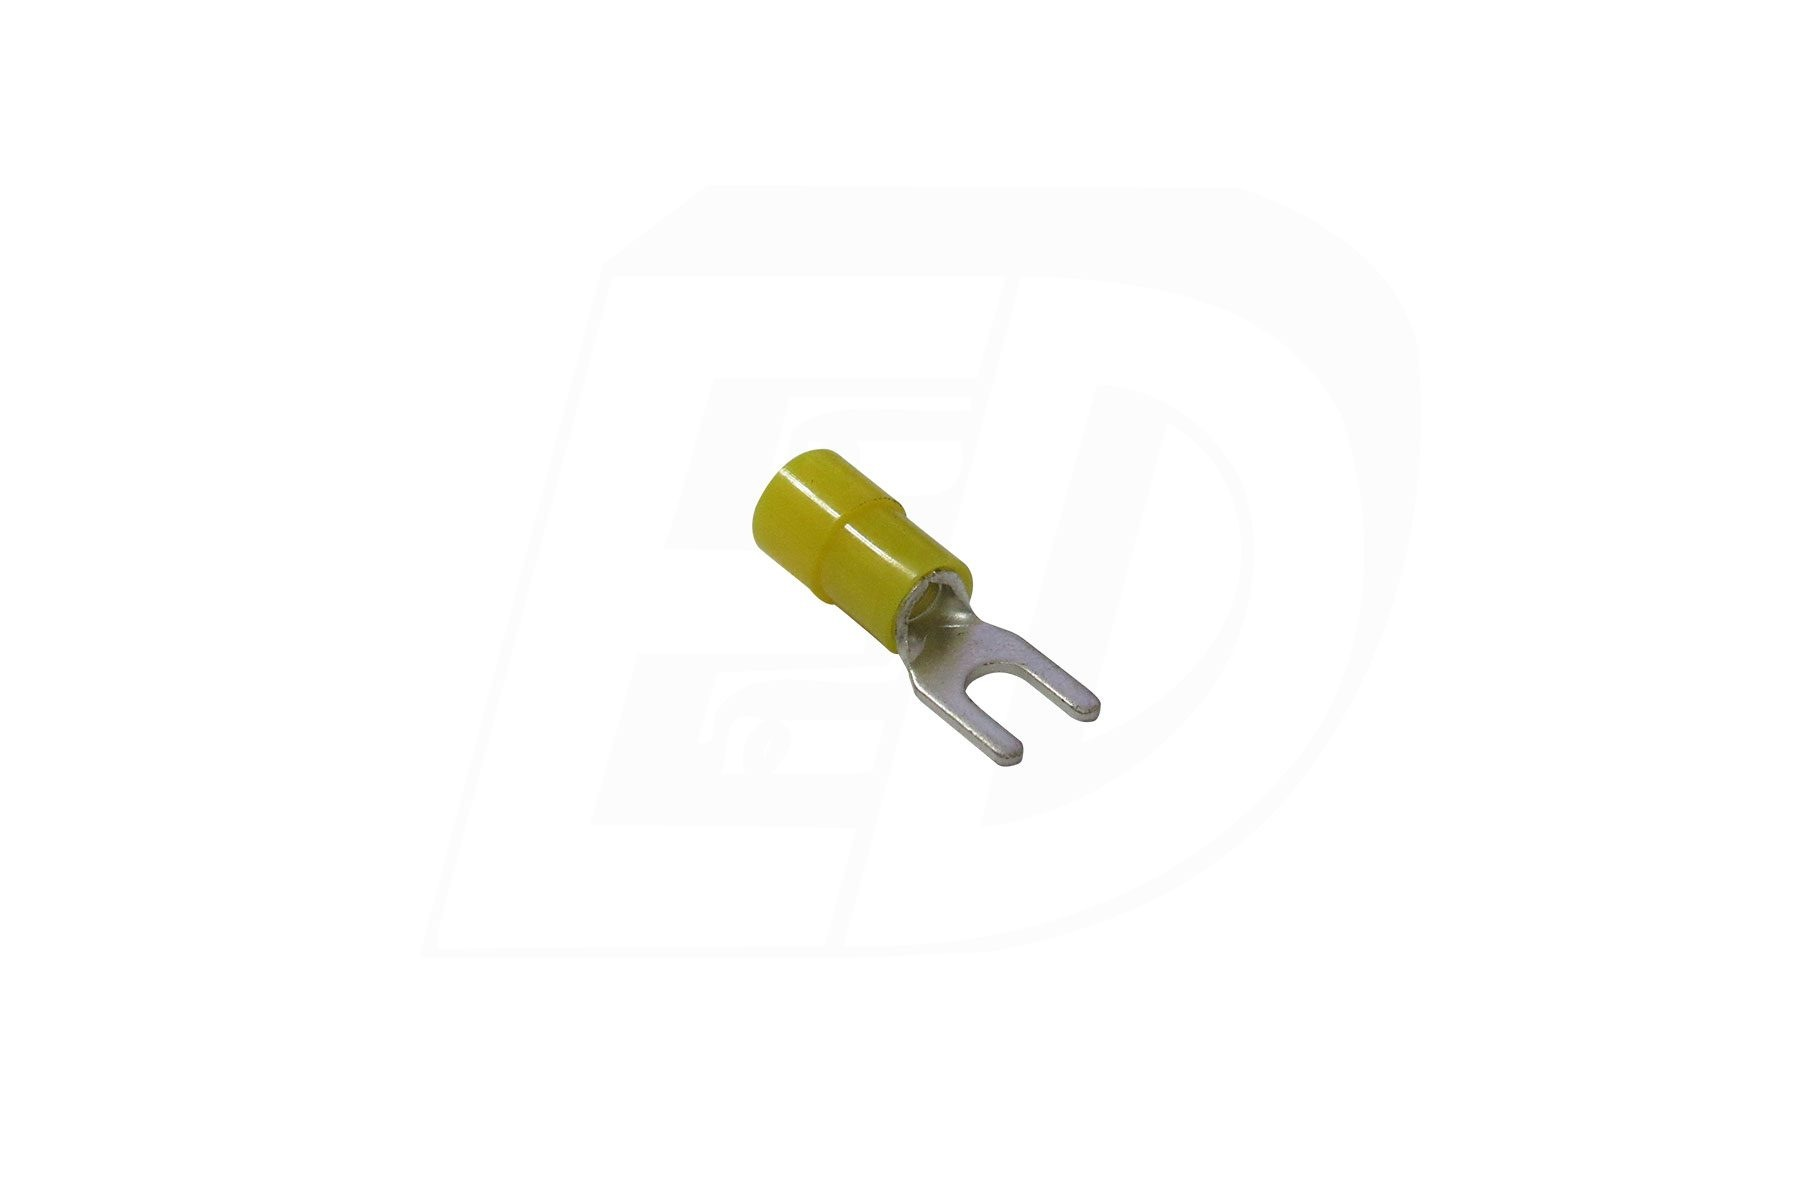 VINYL INSULATED SPADE TERMINAL WITH FUNNEL ENTRY 12 - 10 AWG